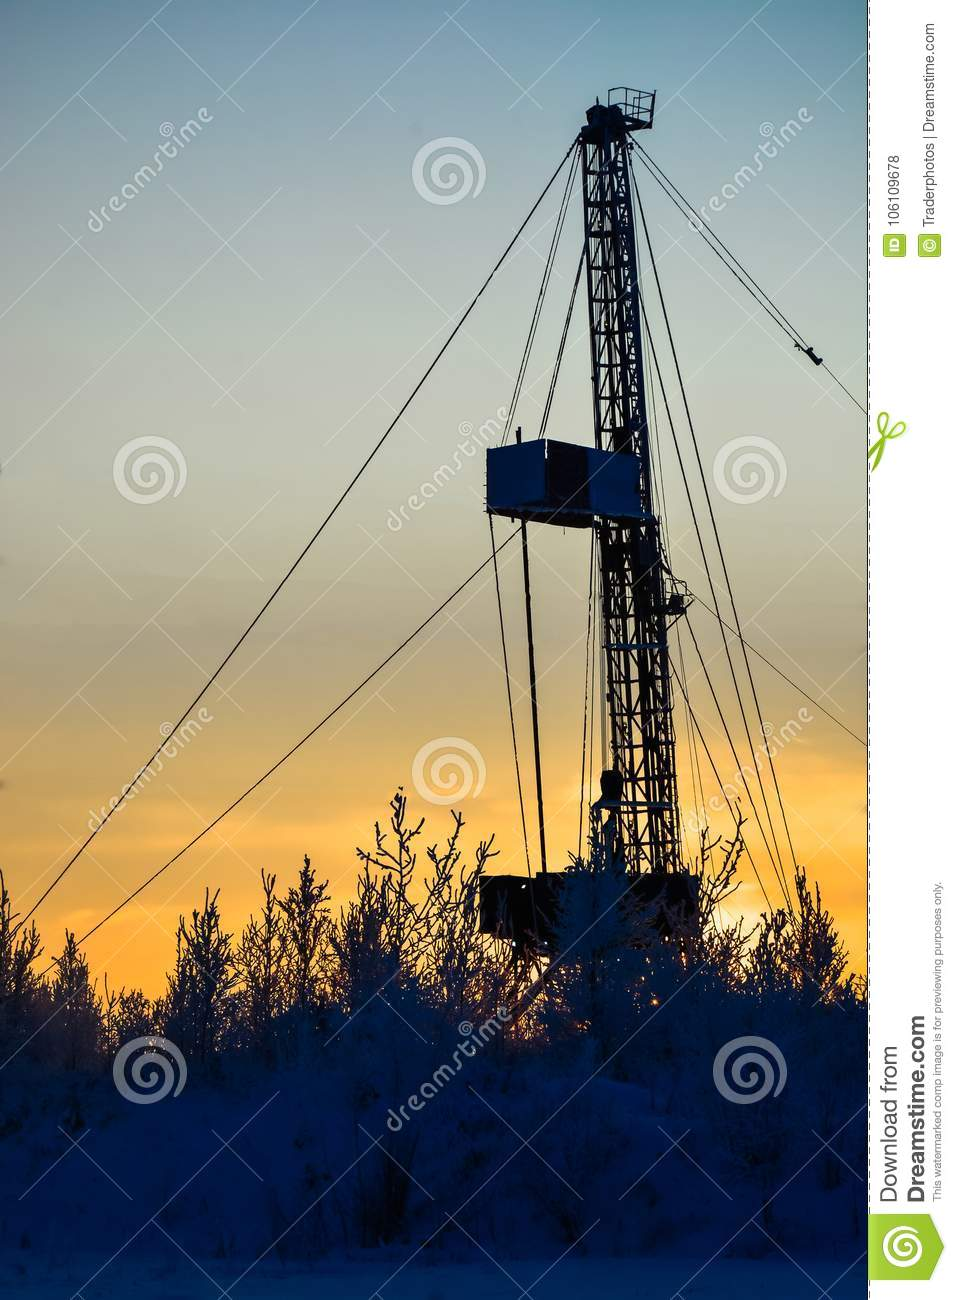 Rig For Drilling Oil And Gas Wells In The Siberian Field Stock Photo